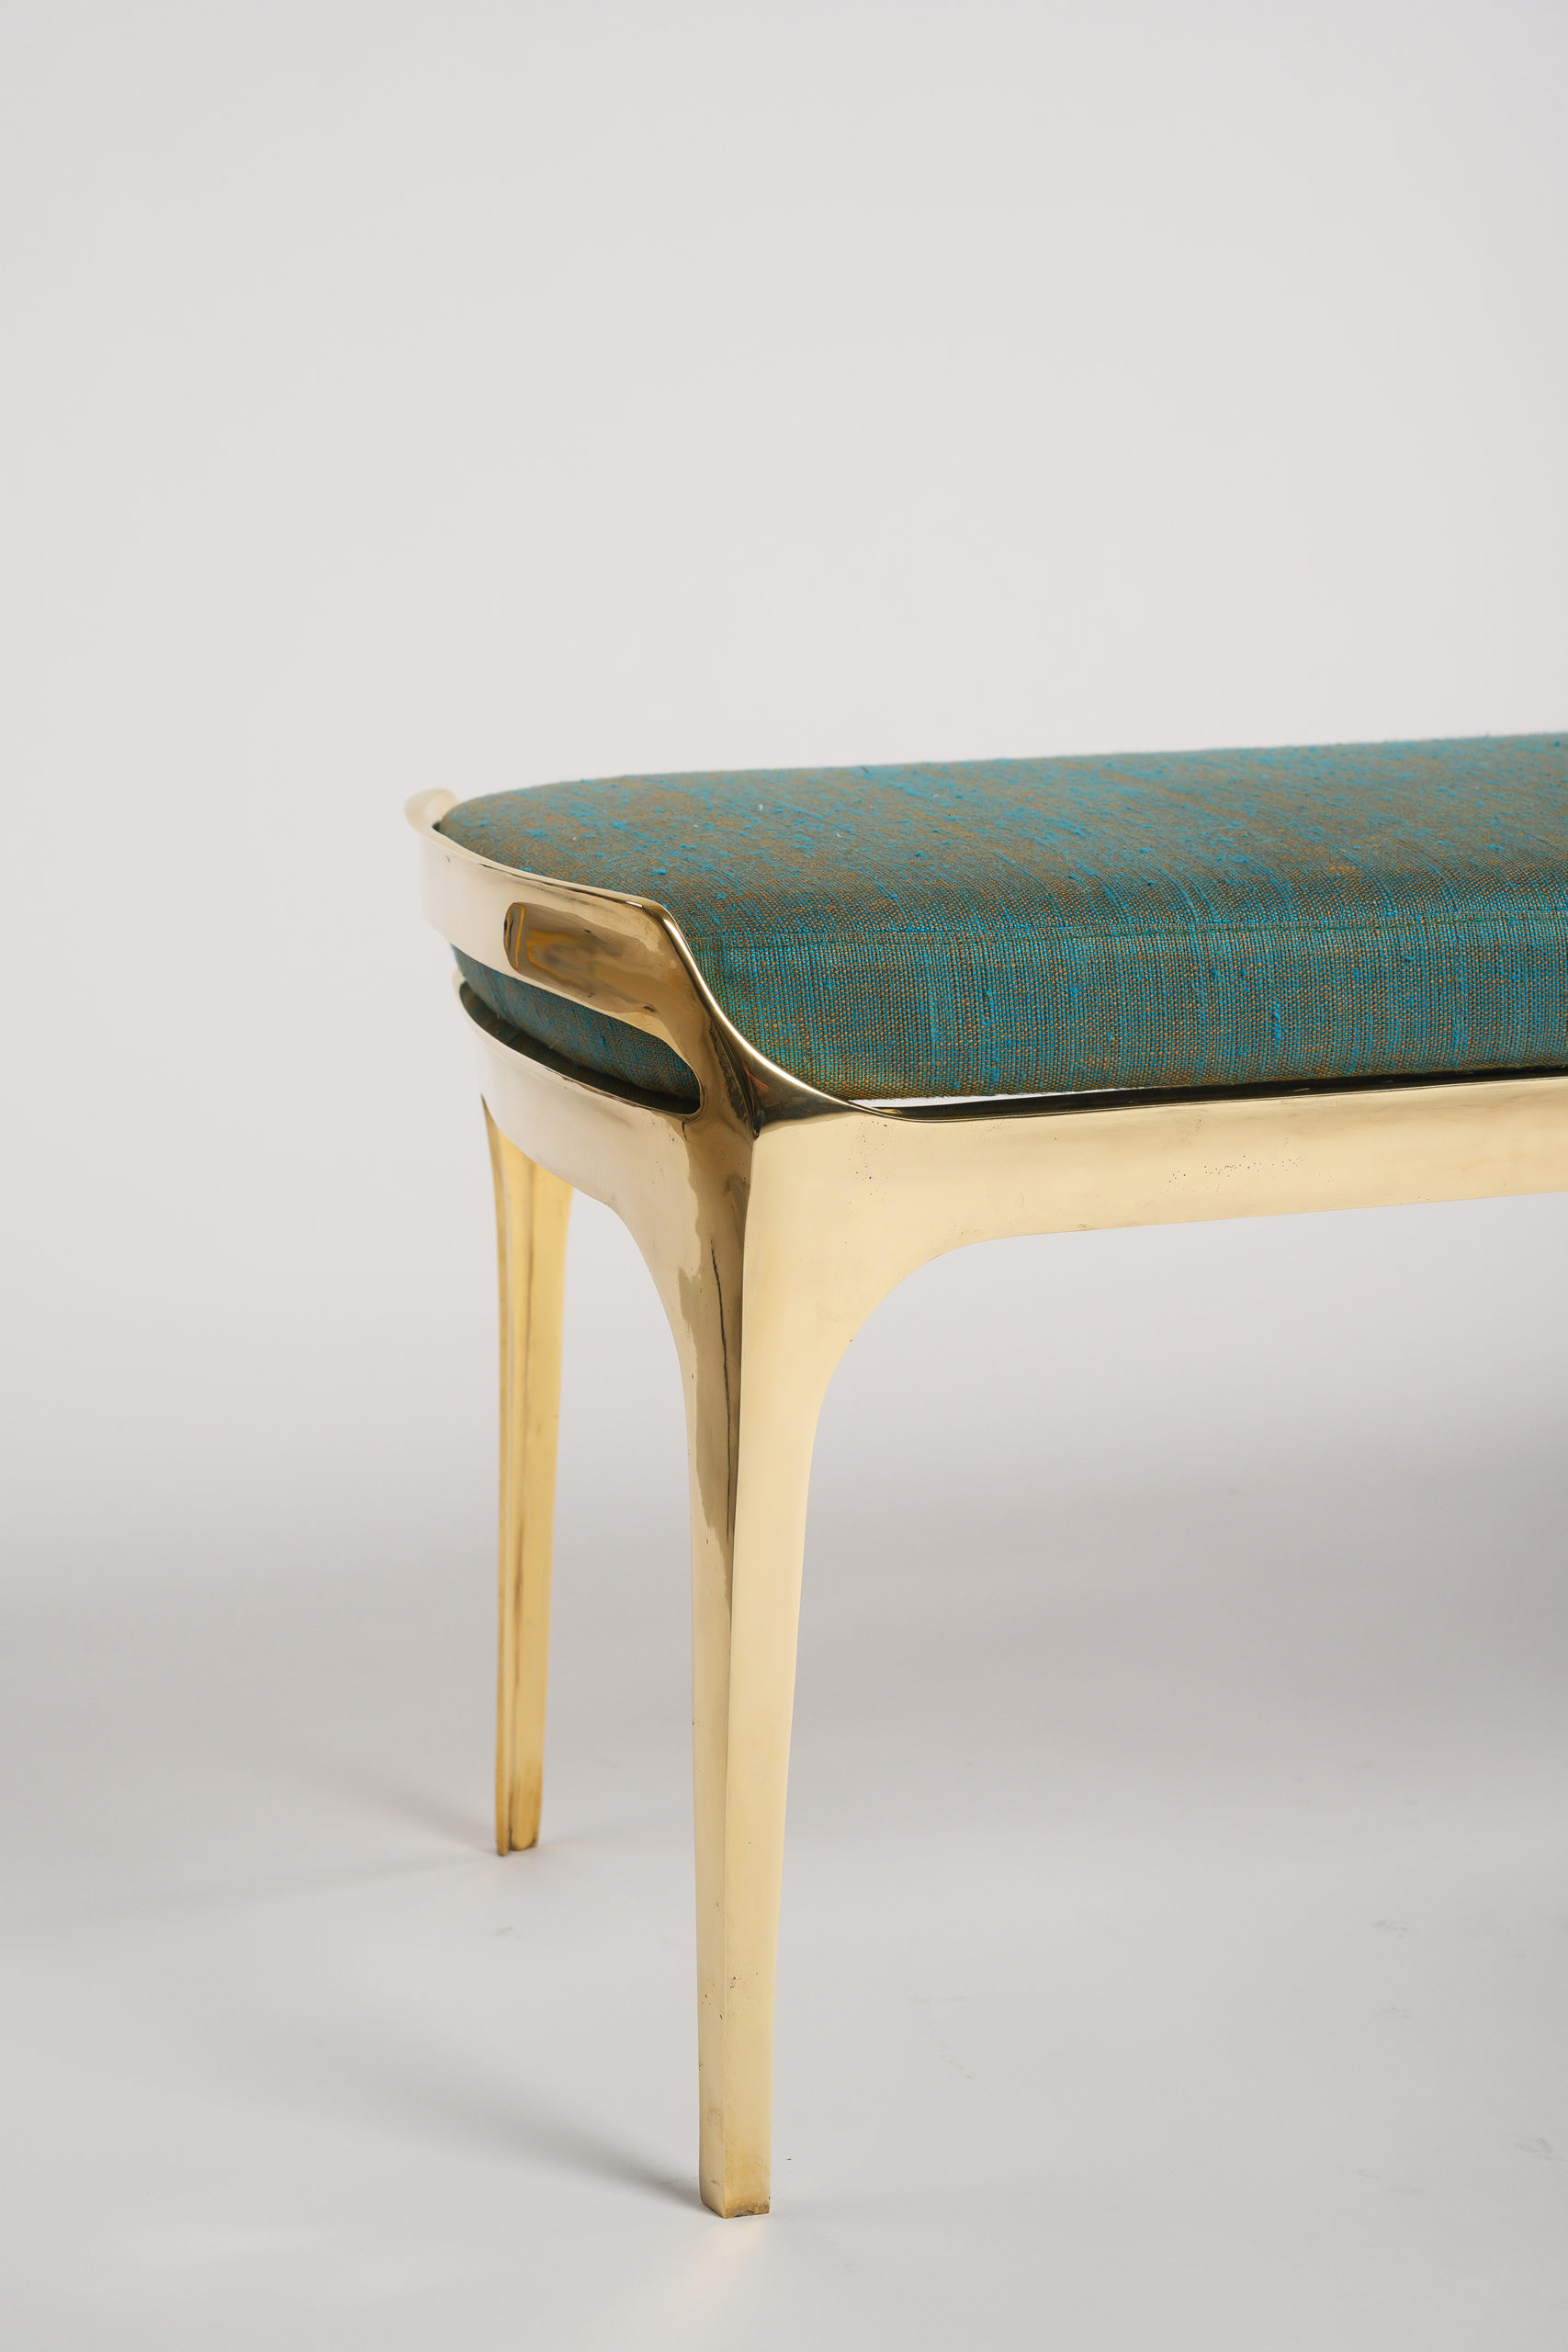 NYDC_WNWN_products_david_sutherland_elain_atelier_BEE_5213